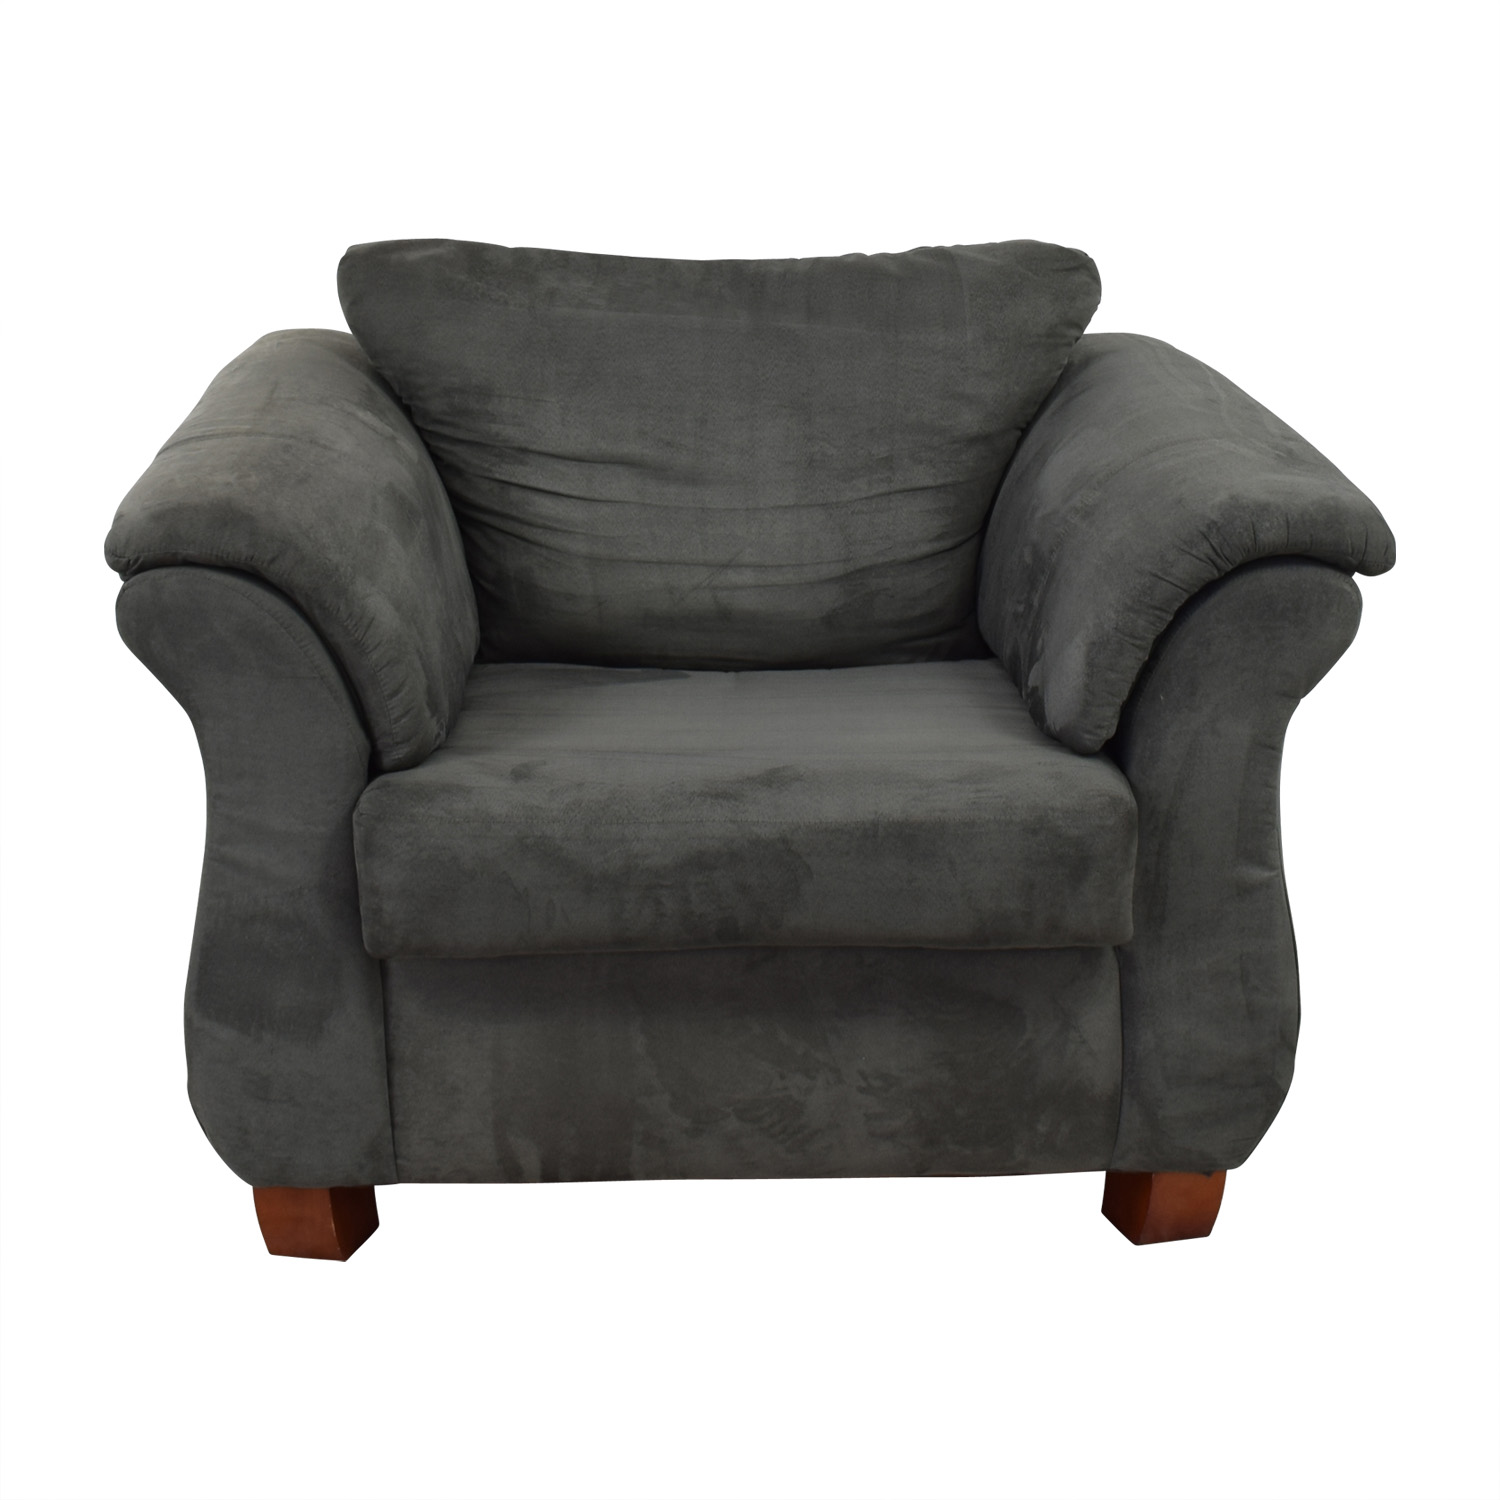 Value City Furniture Grey Loveseat